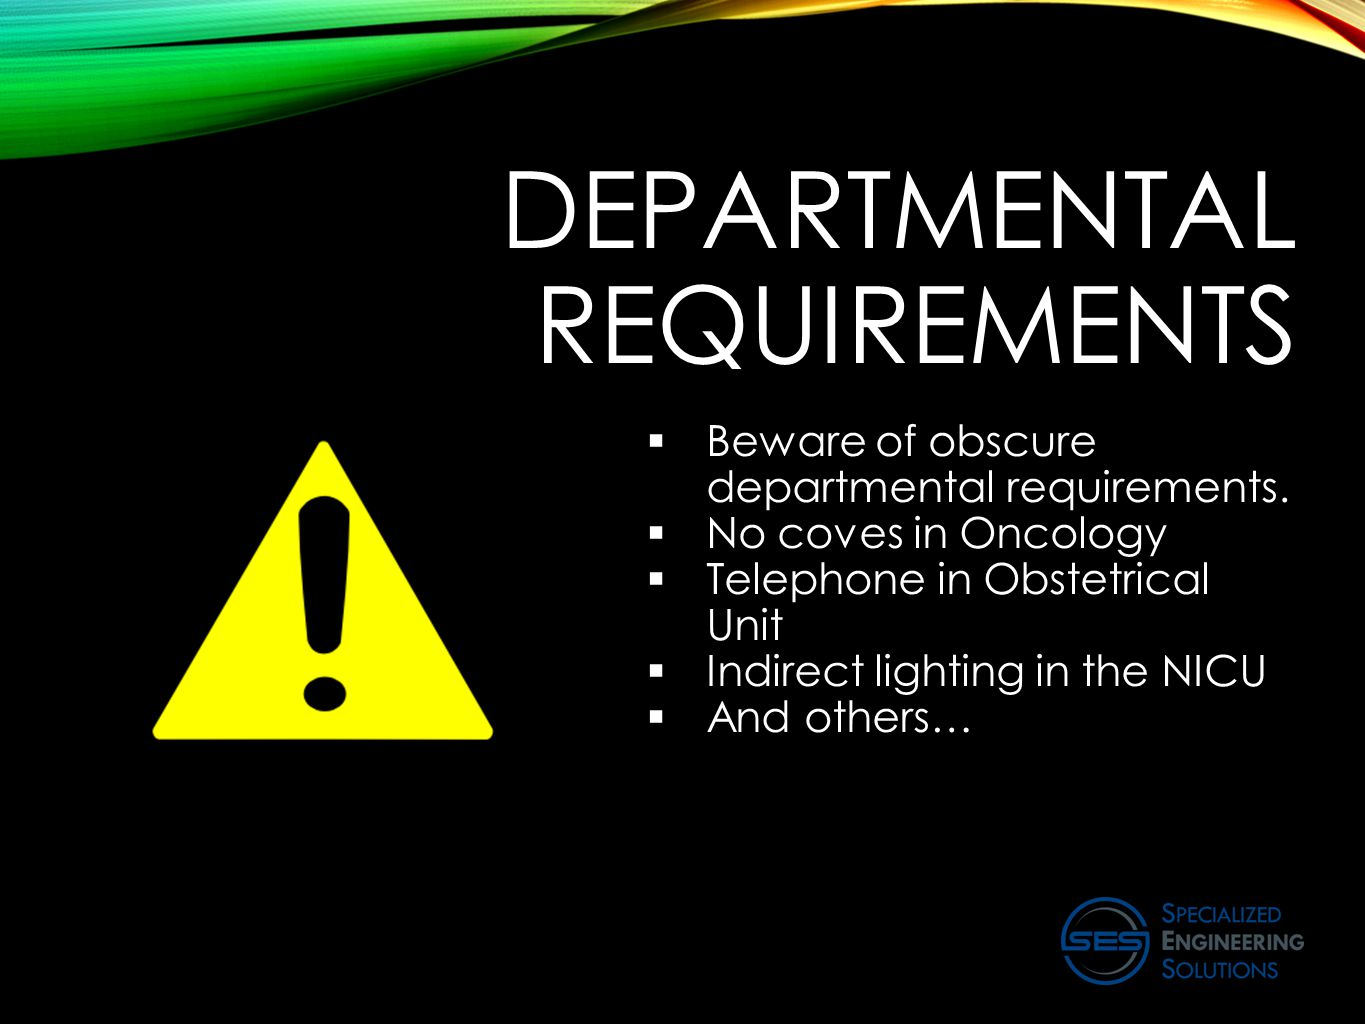 DEPARTMENTAL REQUIREMENTS  Beware of obscure departmental requirements.  No coves in Oncology  Telephone in Obstetrical Unit  Indirect lighting in